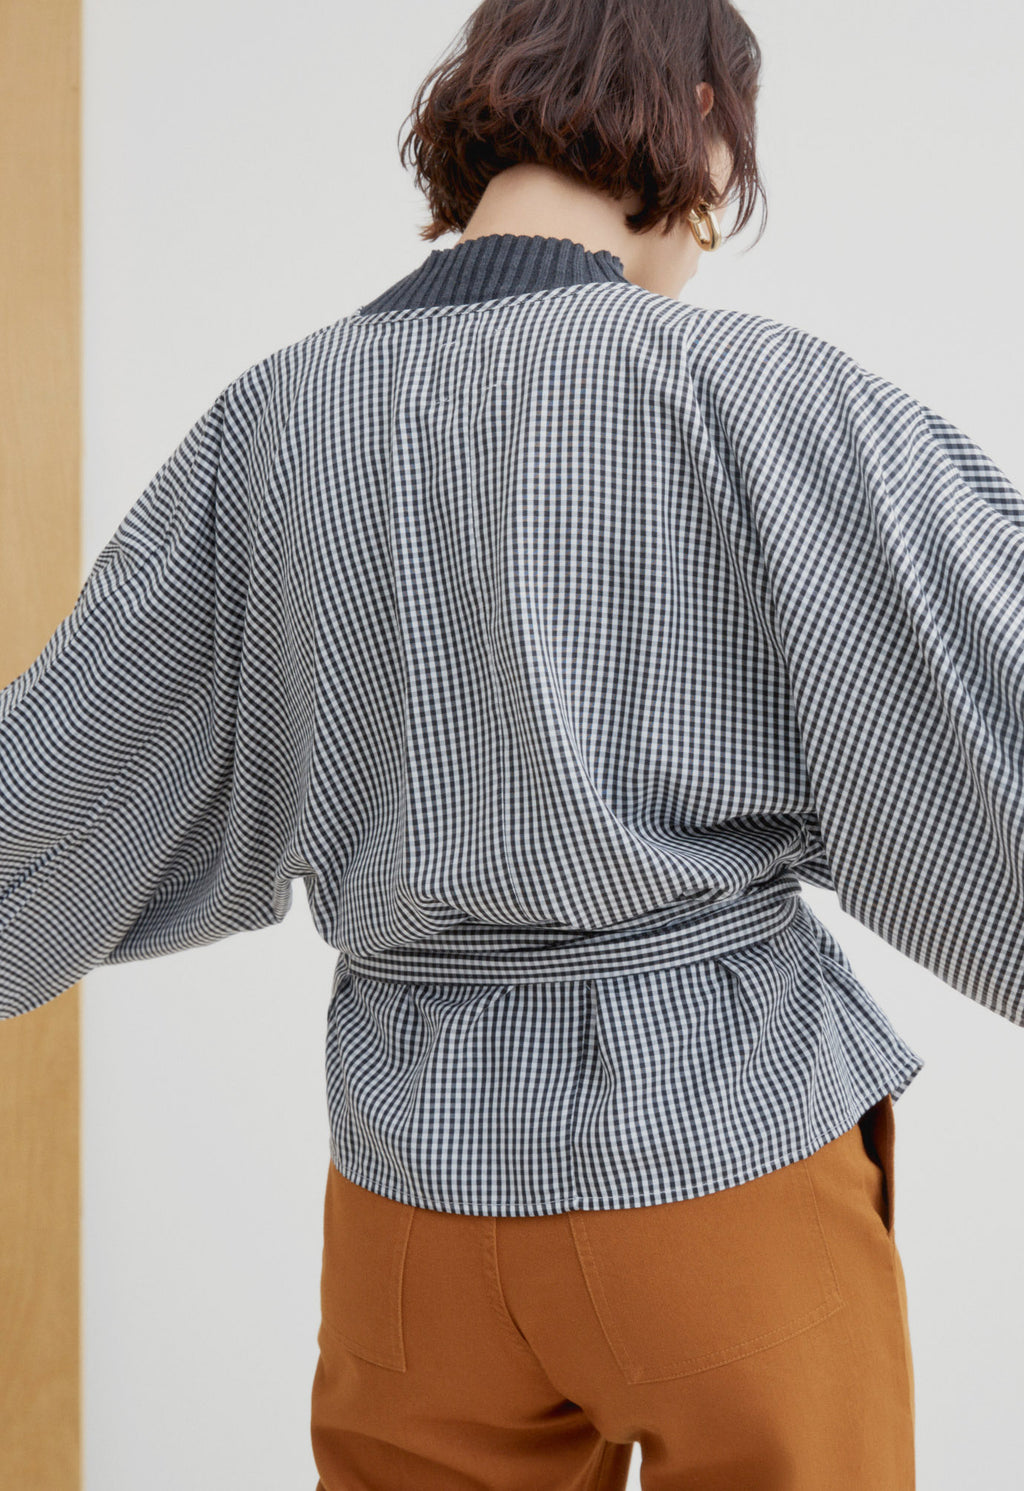 Moma Wrap Top Gingham, top, KOWTOW, - nois